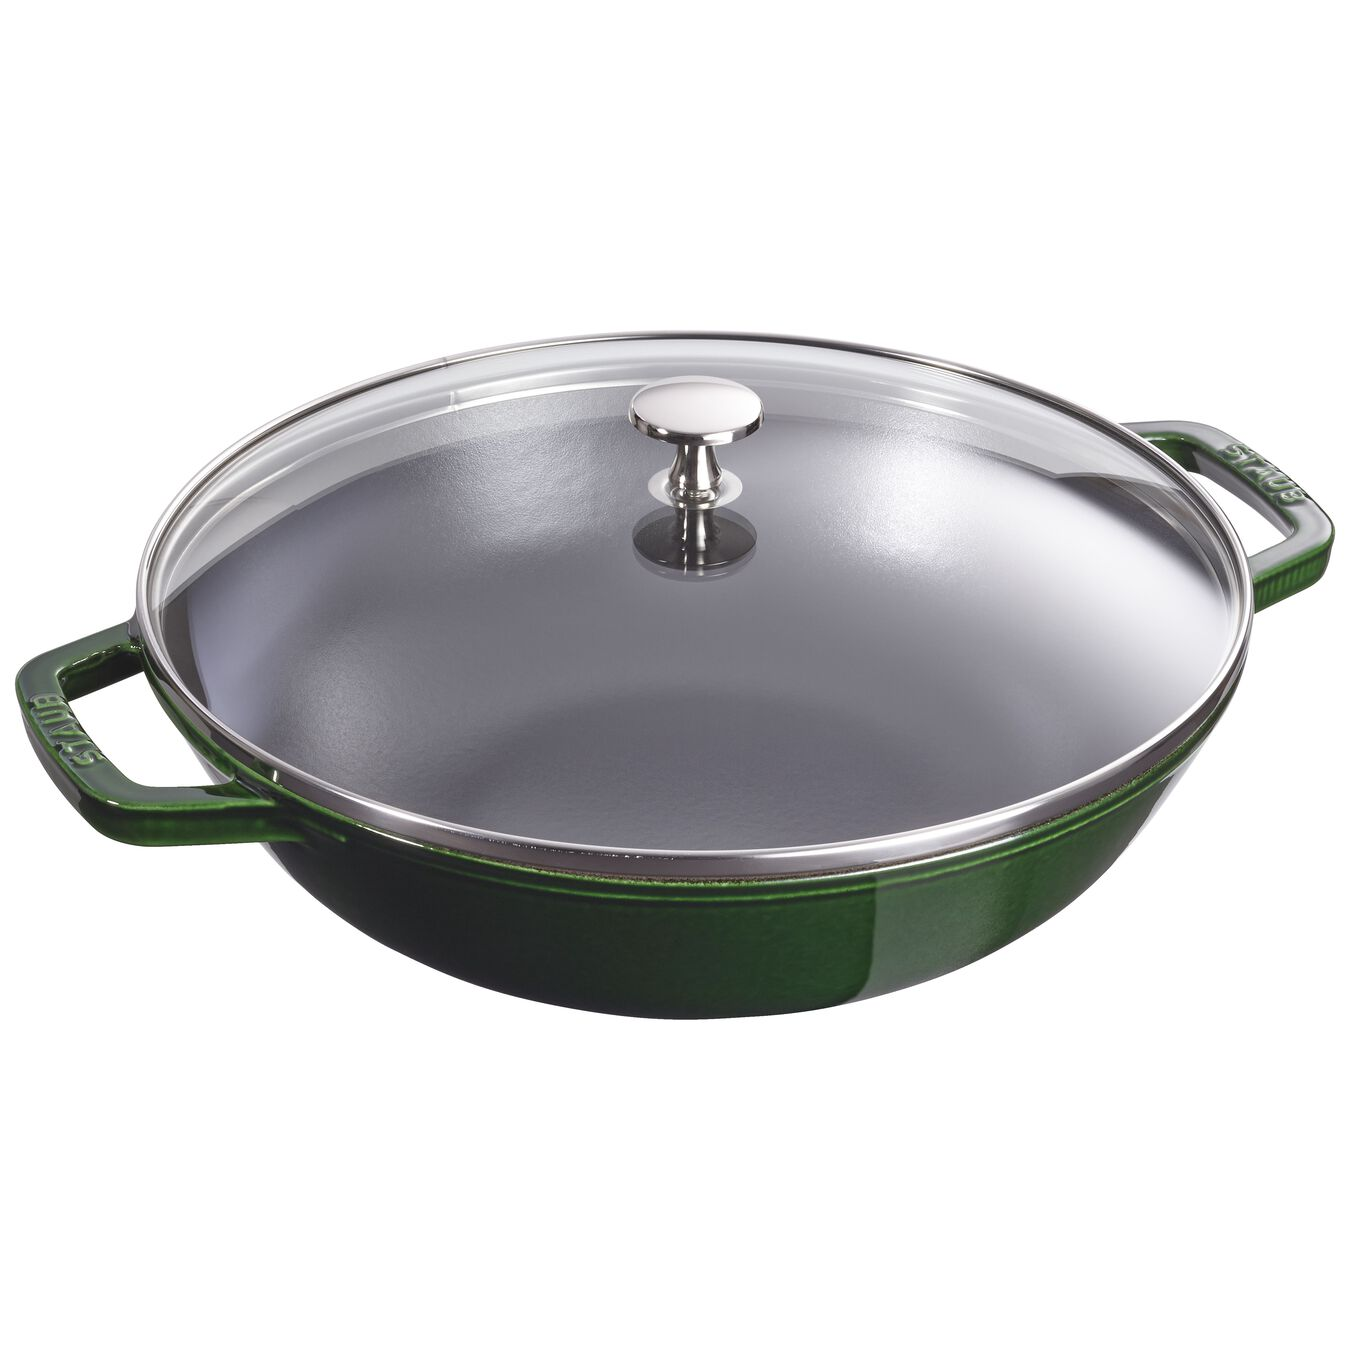 30 cm Cast iron Wok with glass lid, Basil-Green,,large 1